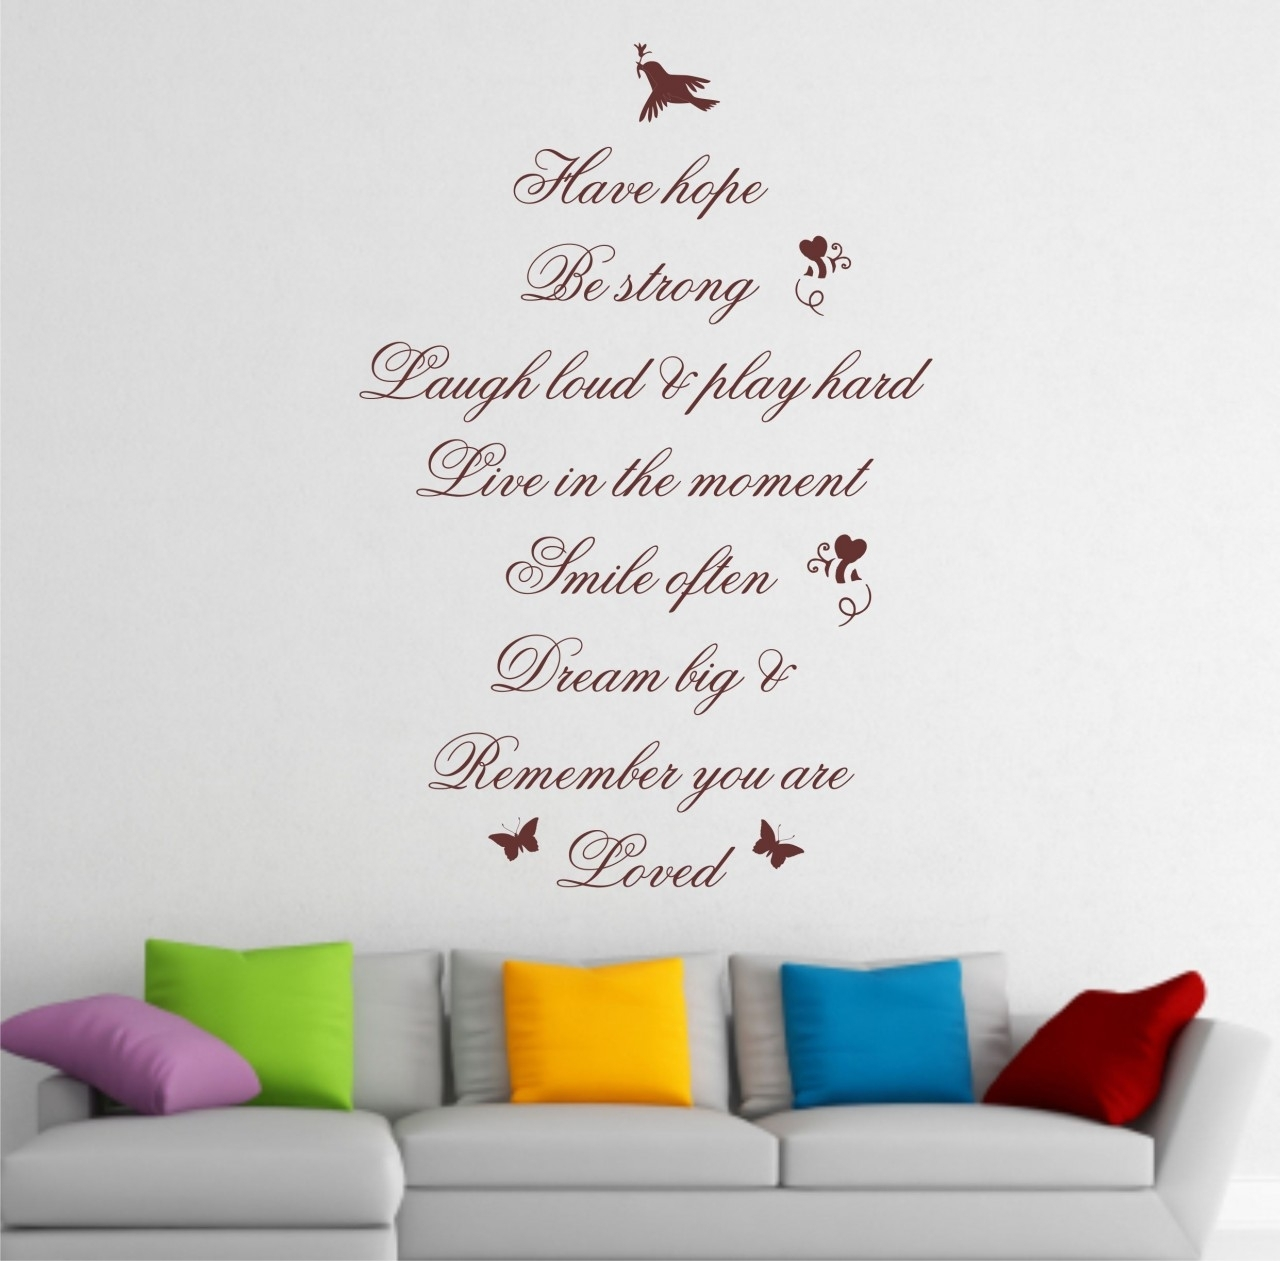 Stunning Wall Art Sayings Quotes 92 In With Wall Art Sayings Quotes With Regard To Latest Wall Art Sayings (Gallery 10 of 20)